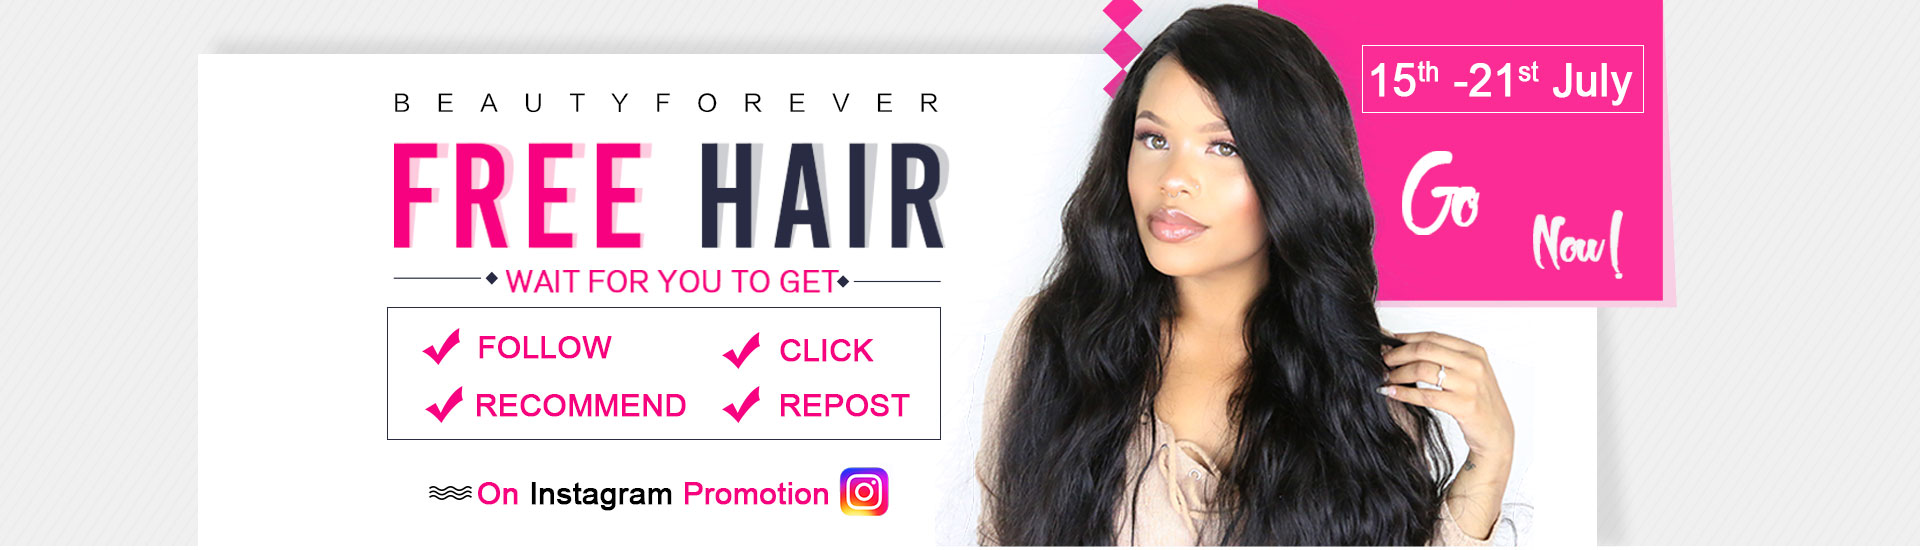 human hair promotion